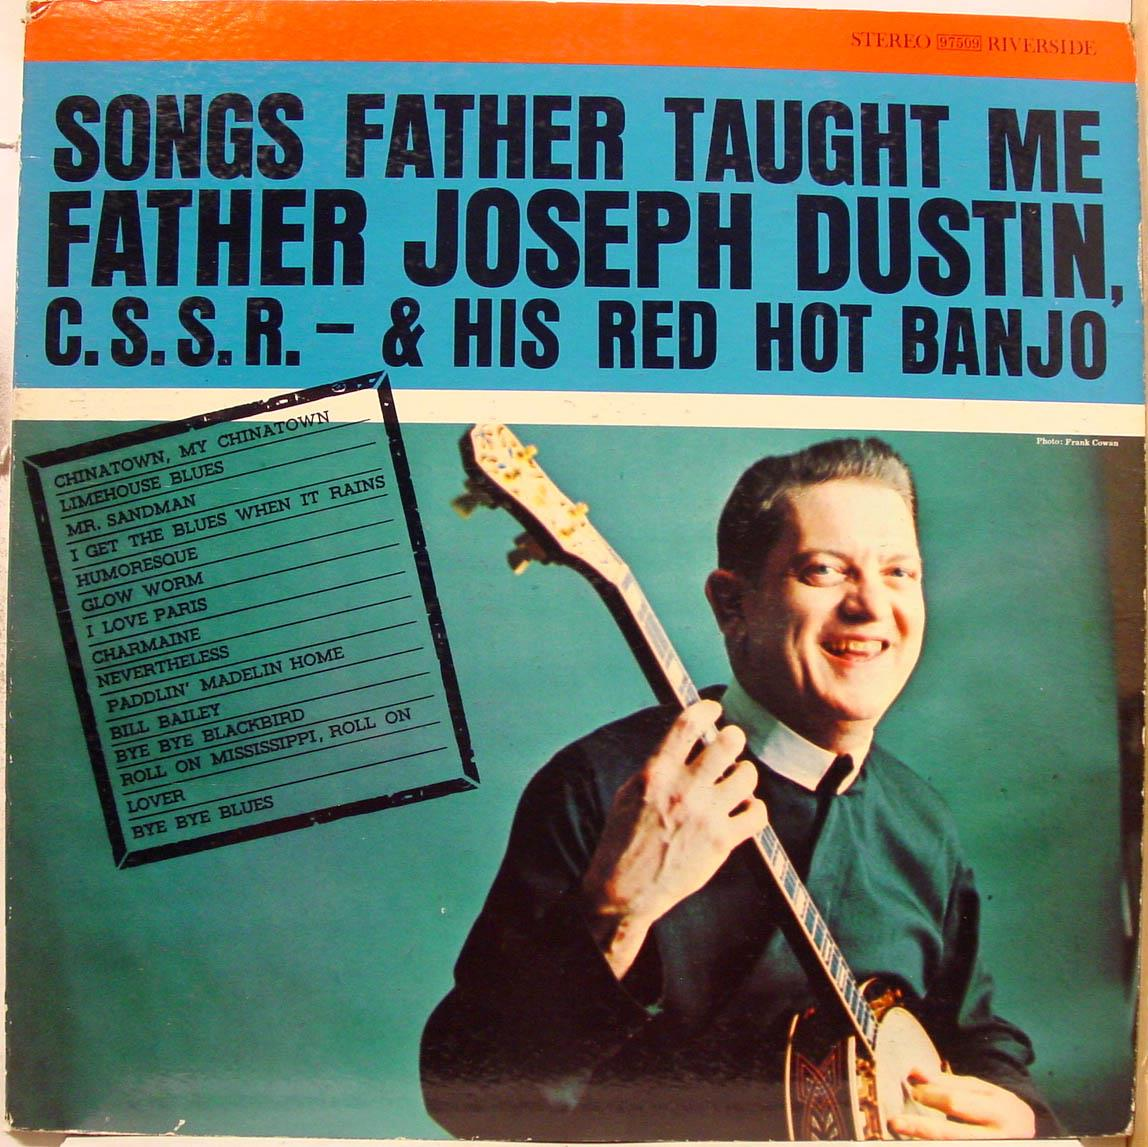 FATHER JOSEPH DUSTIN - Father Joseph Dustin Songs Father Taught Me Lp Vg+ Rlp 97509 Dg Vinyl Record (songs Father Taught Me